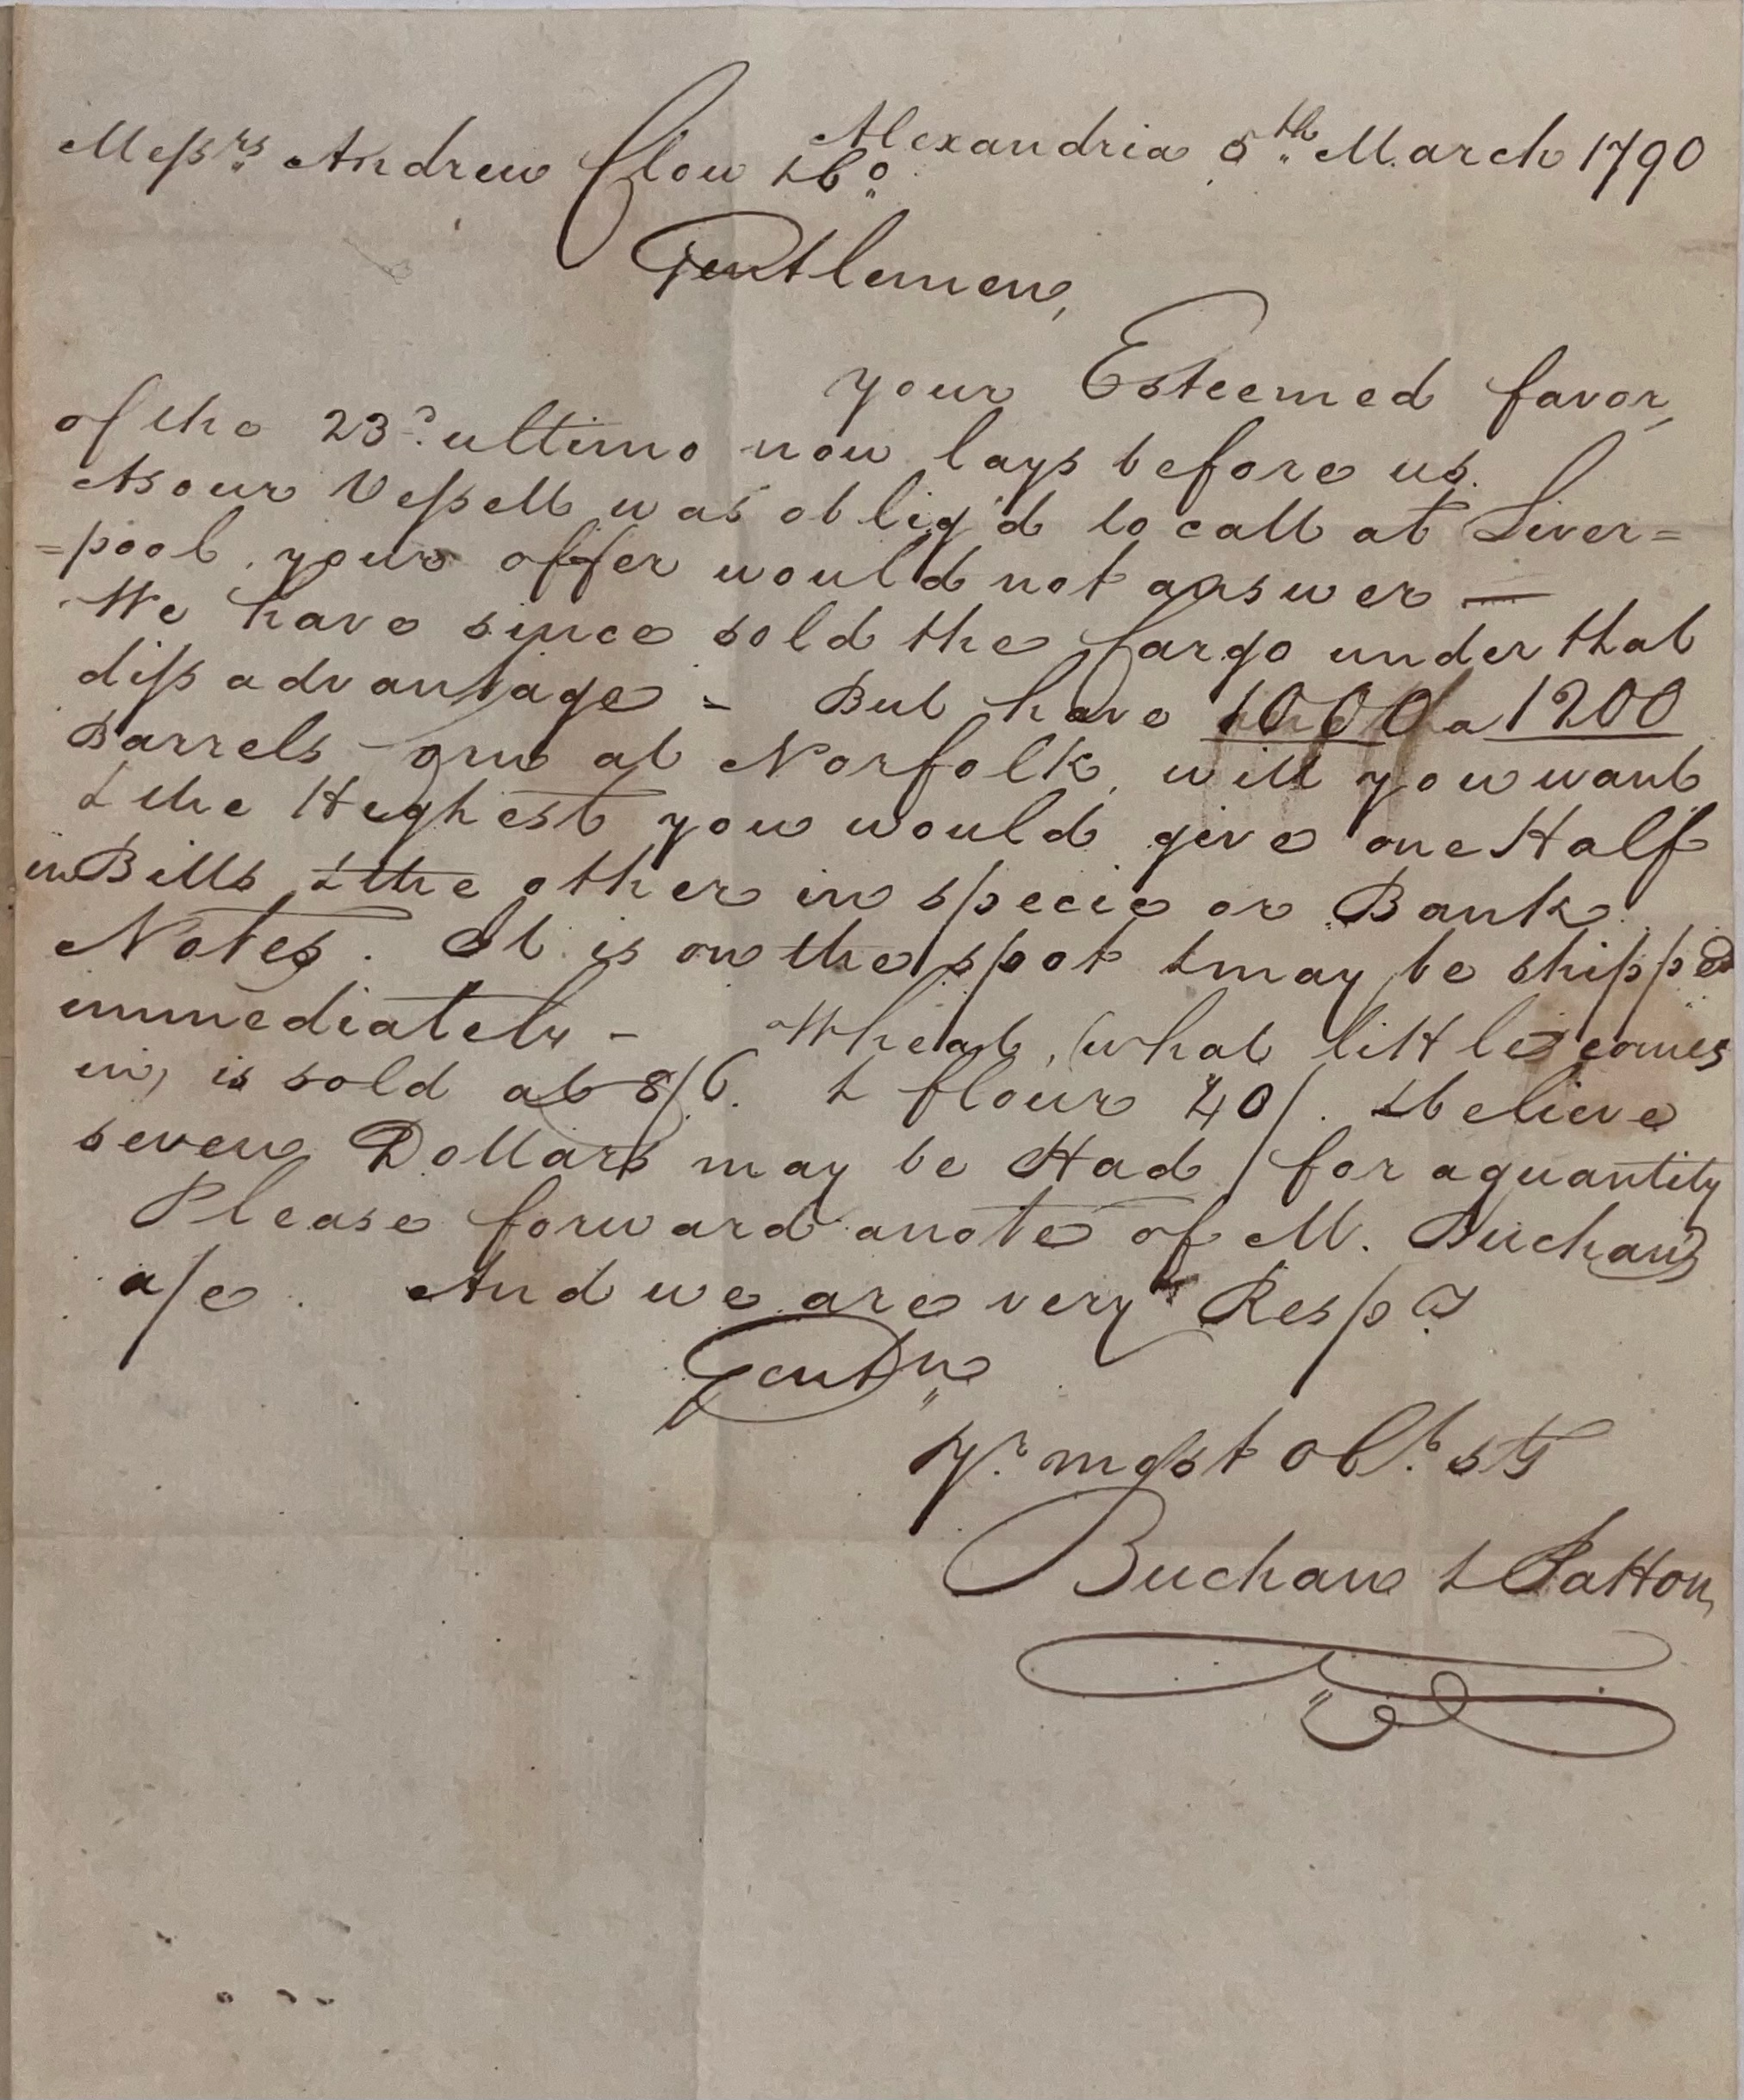 Letter from Buchan Patton in Alexandria to Andrew Clow in Philadelphia